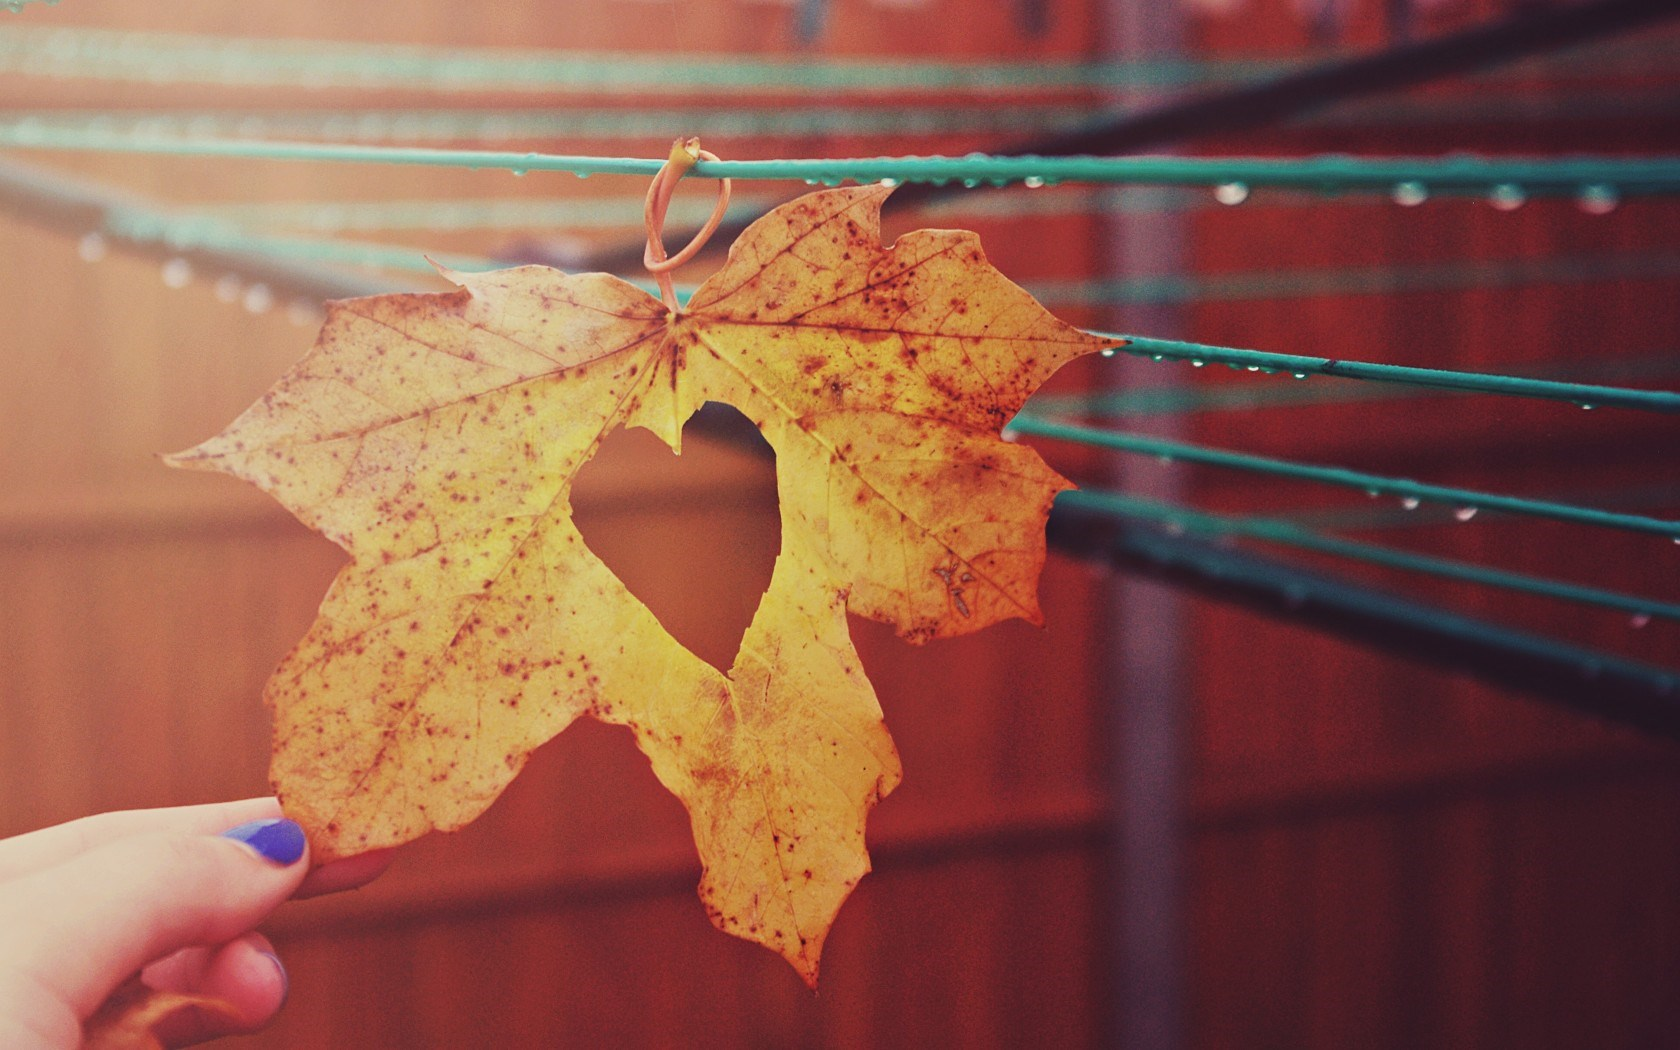 Leaf Cool Wallpapers - Wallpaper, High Definition, High ...